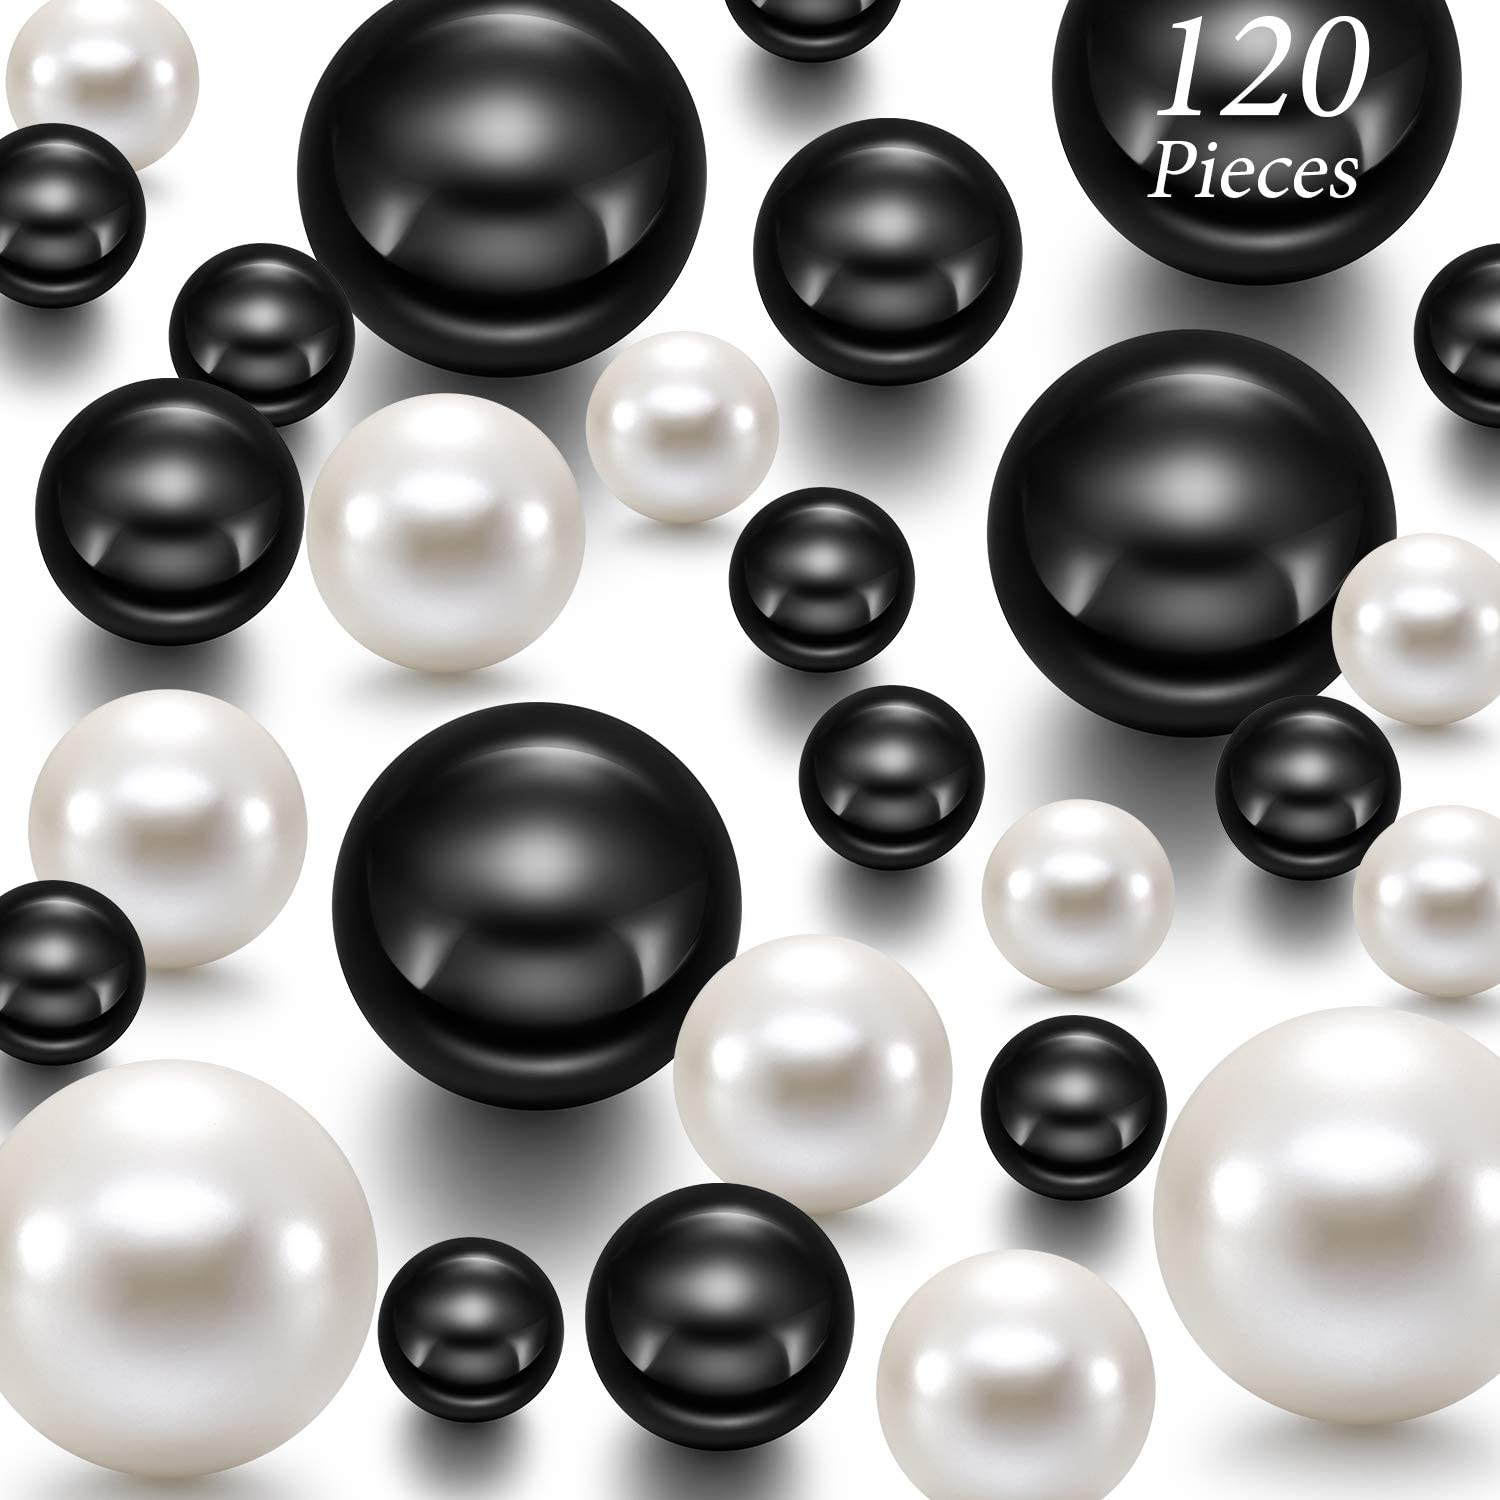 Hicarer 120 Pieces Pearl for Vase Filler Pearls Bead for Vase Makeup Beads for Brushes Holder Assorted Round Faux Pearl Beads for Home Wedding Decor, 14/20/ 30 mm(Creamy White, Bright Black)